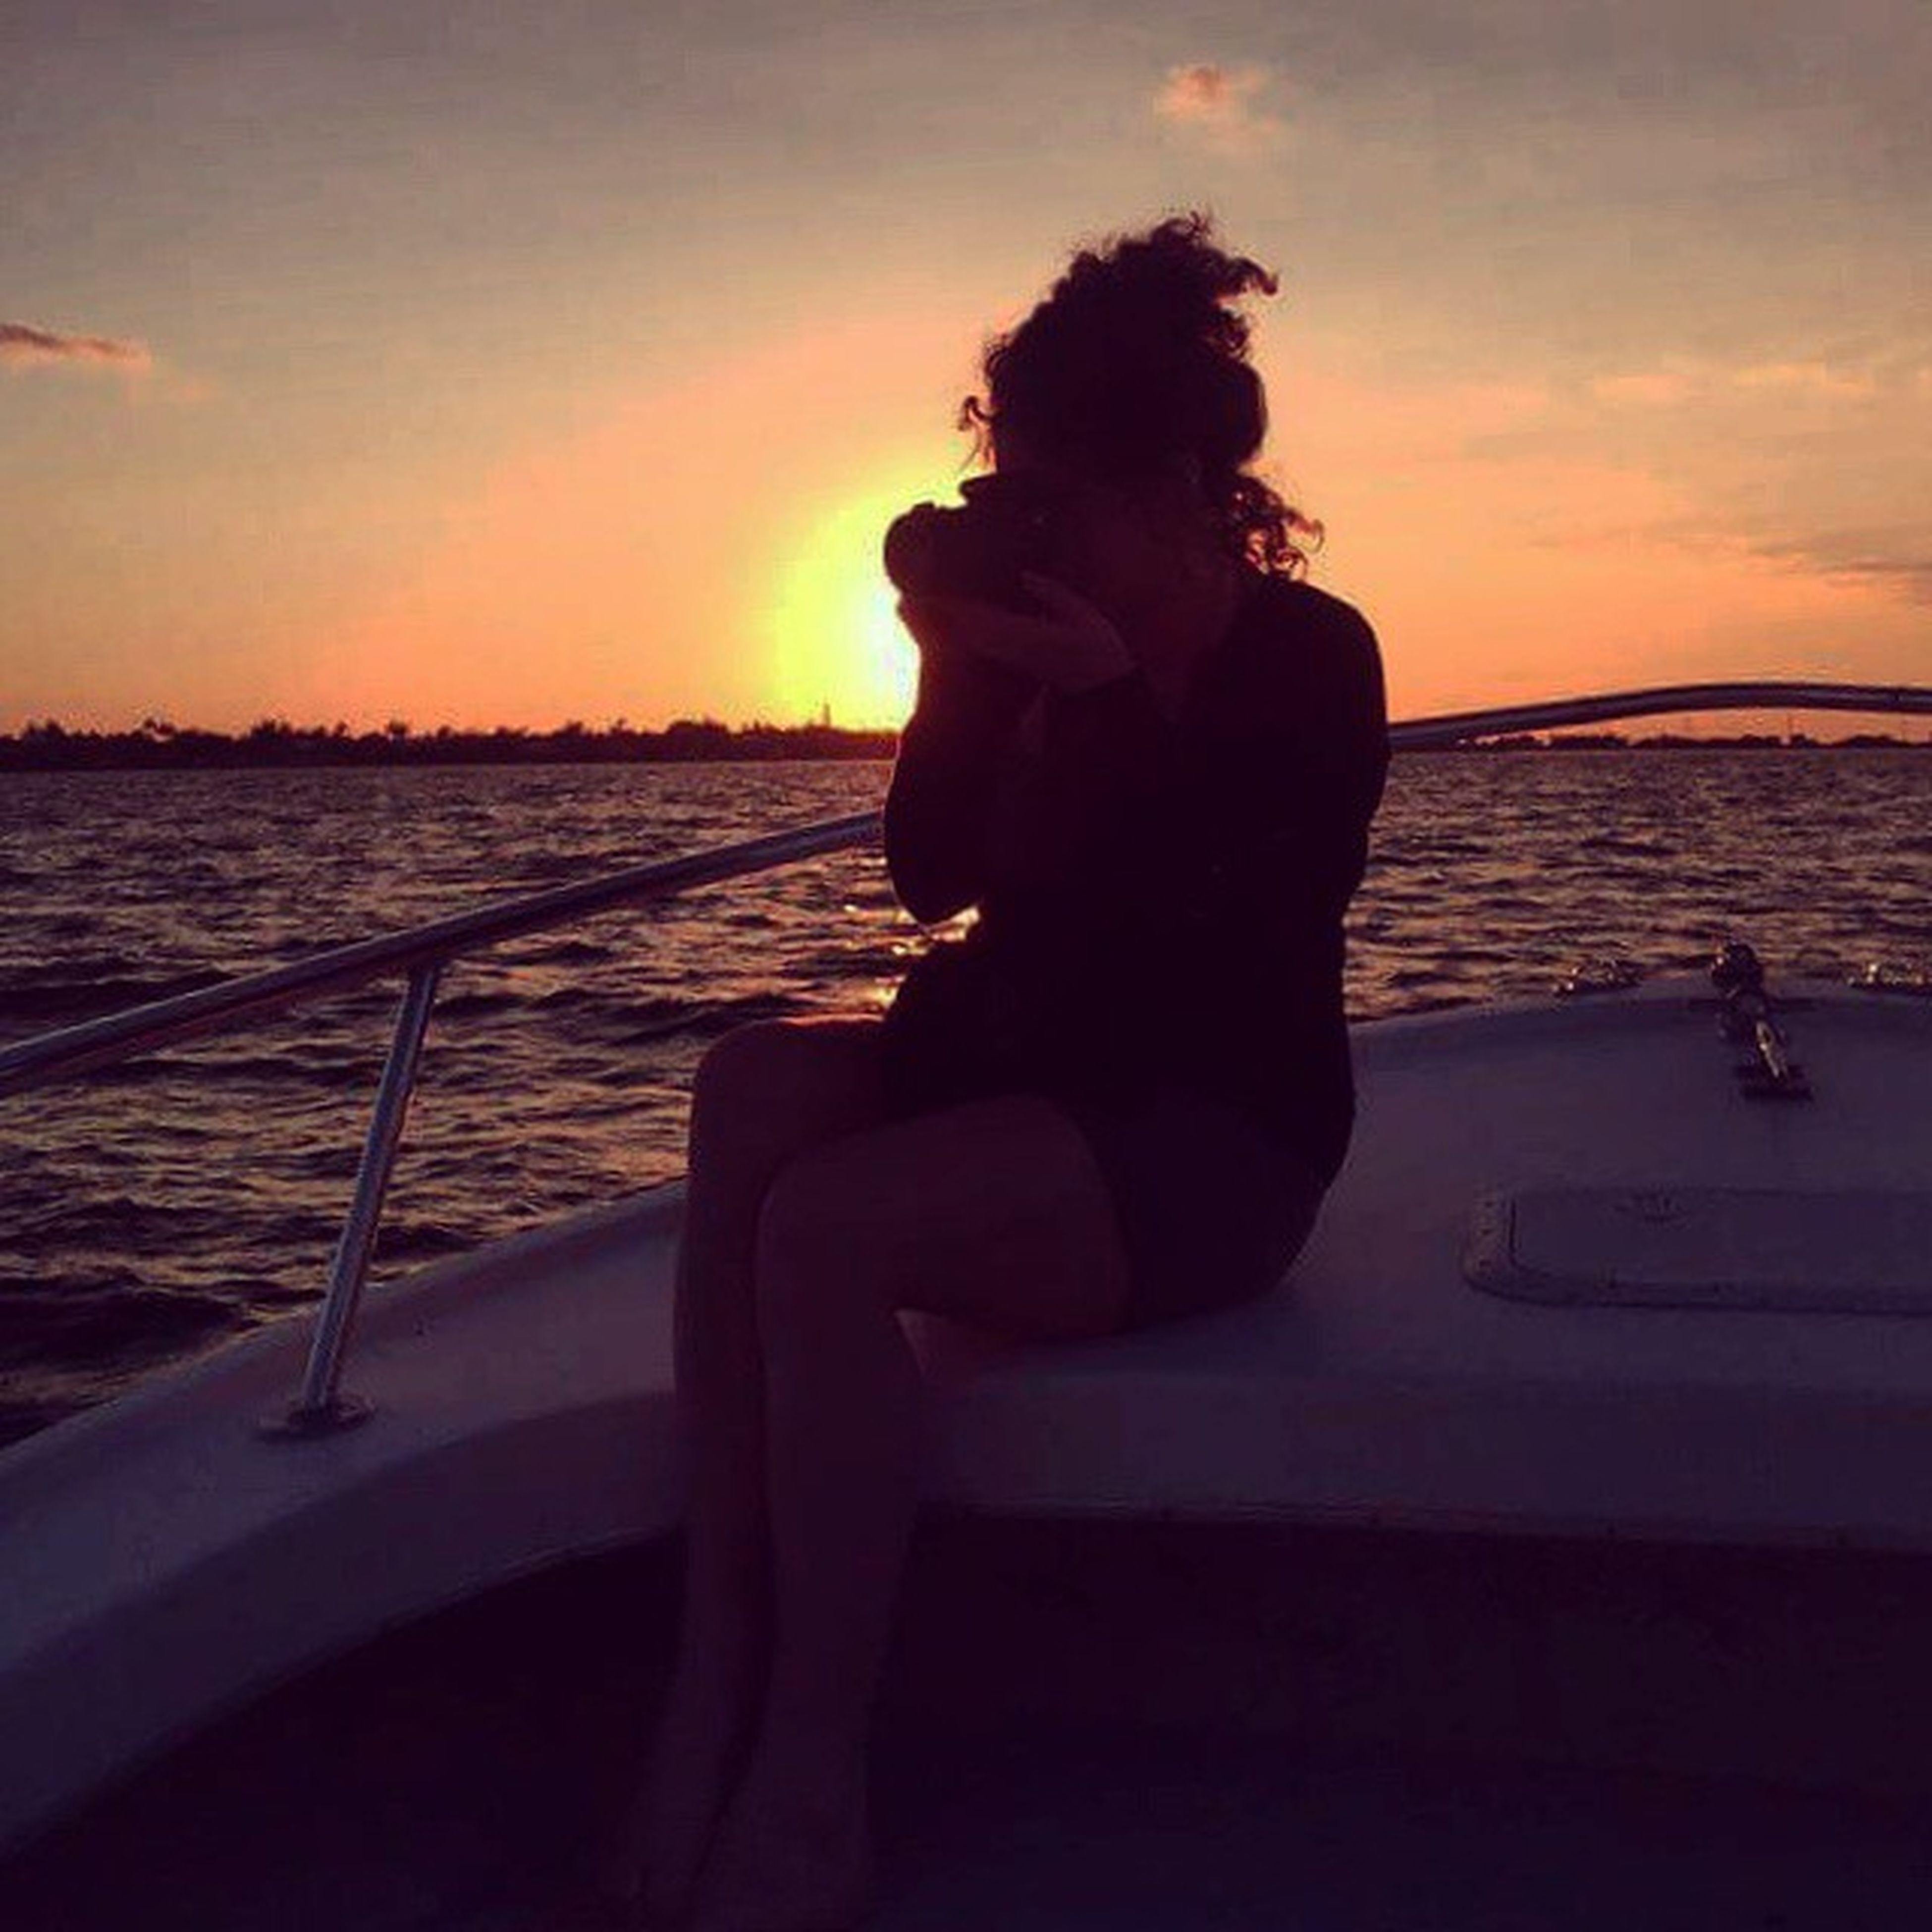 sunset, water, sea, silhouette, sky, orange color, transportation, nautical vessel, sun, mode of transport, scenics, boat, beauty in nature, tranquility, tranquil scene, lifestyles, nature, leisure activity